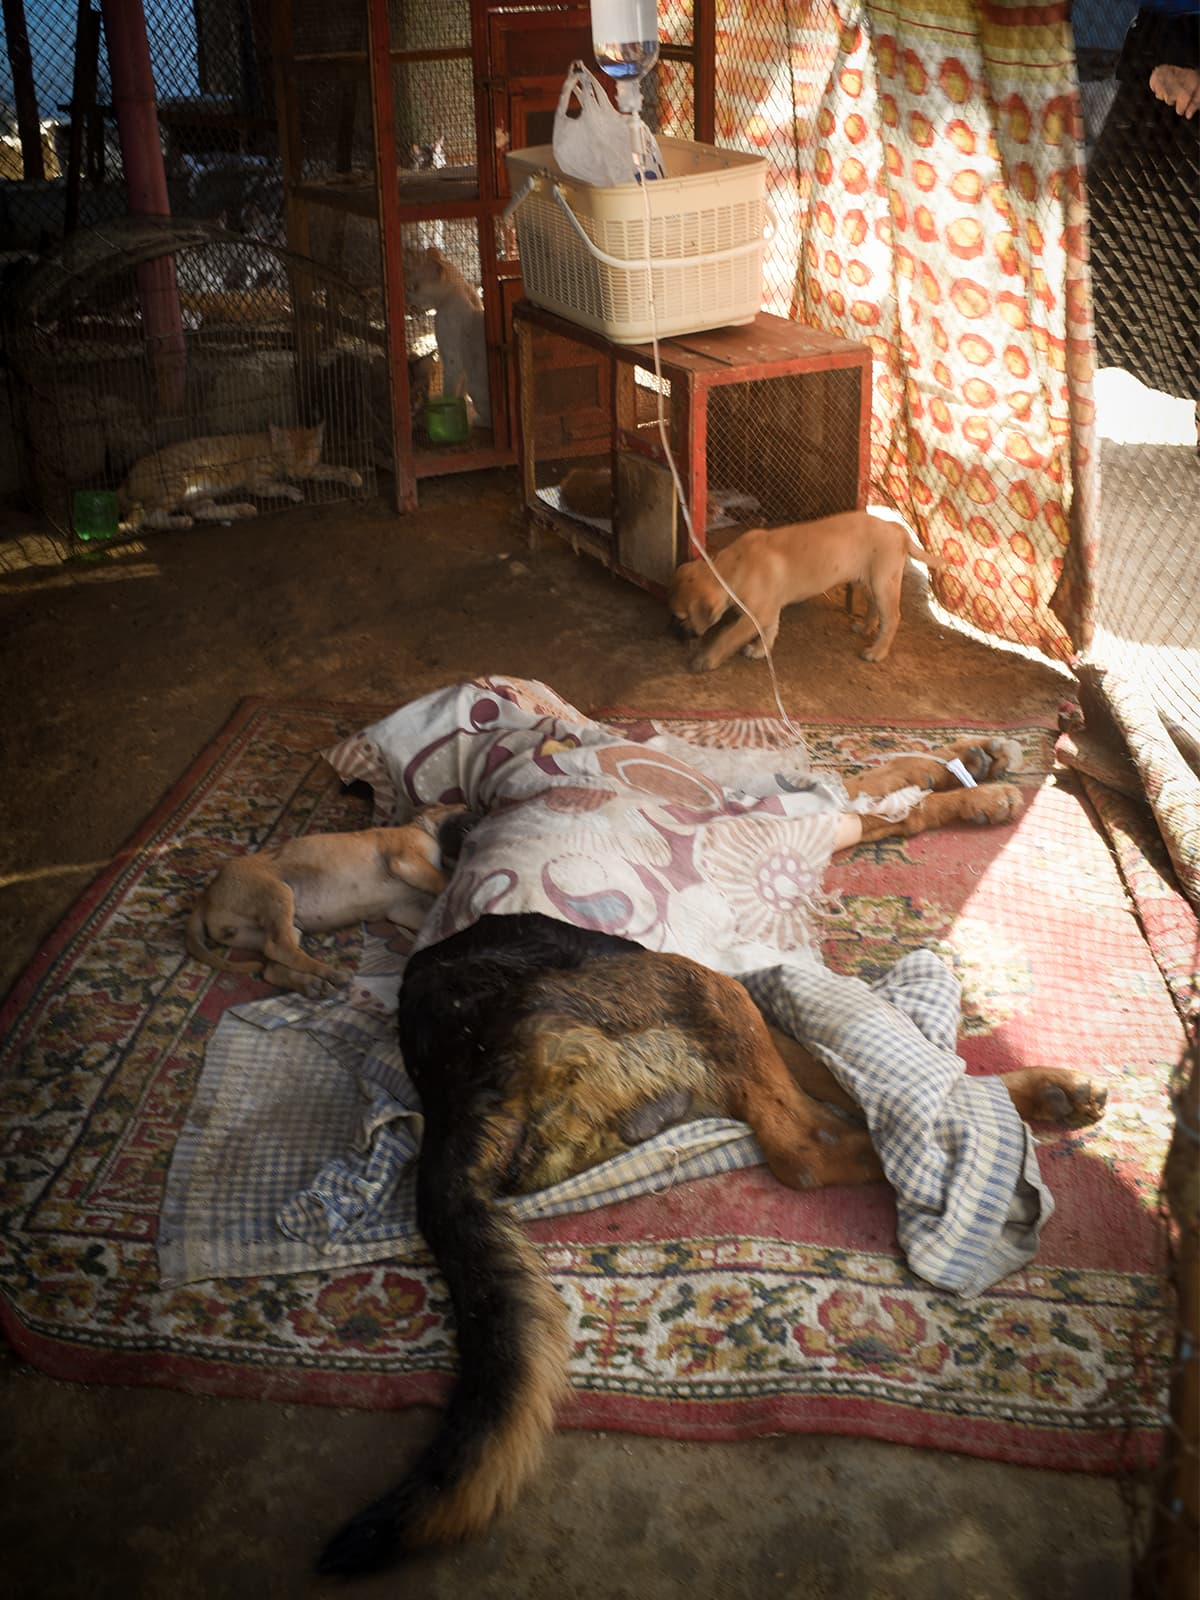 An injured dog lying near the entrace to a shelter